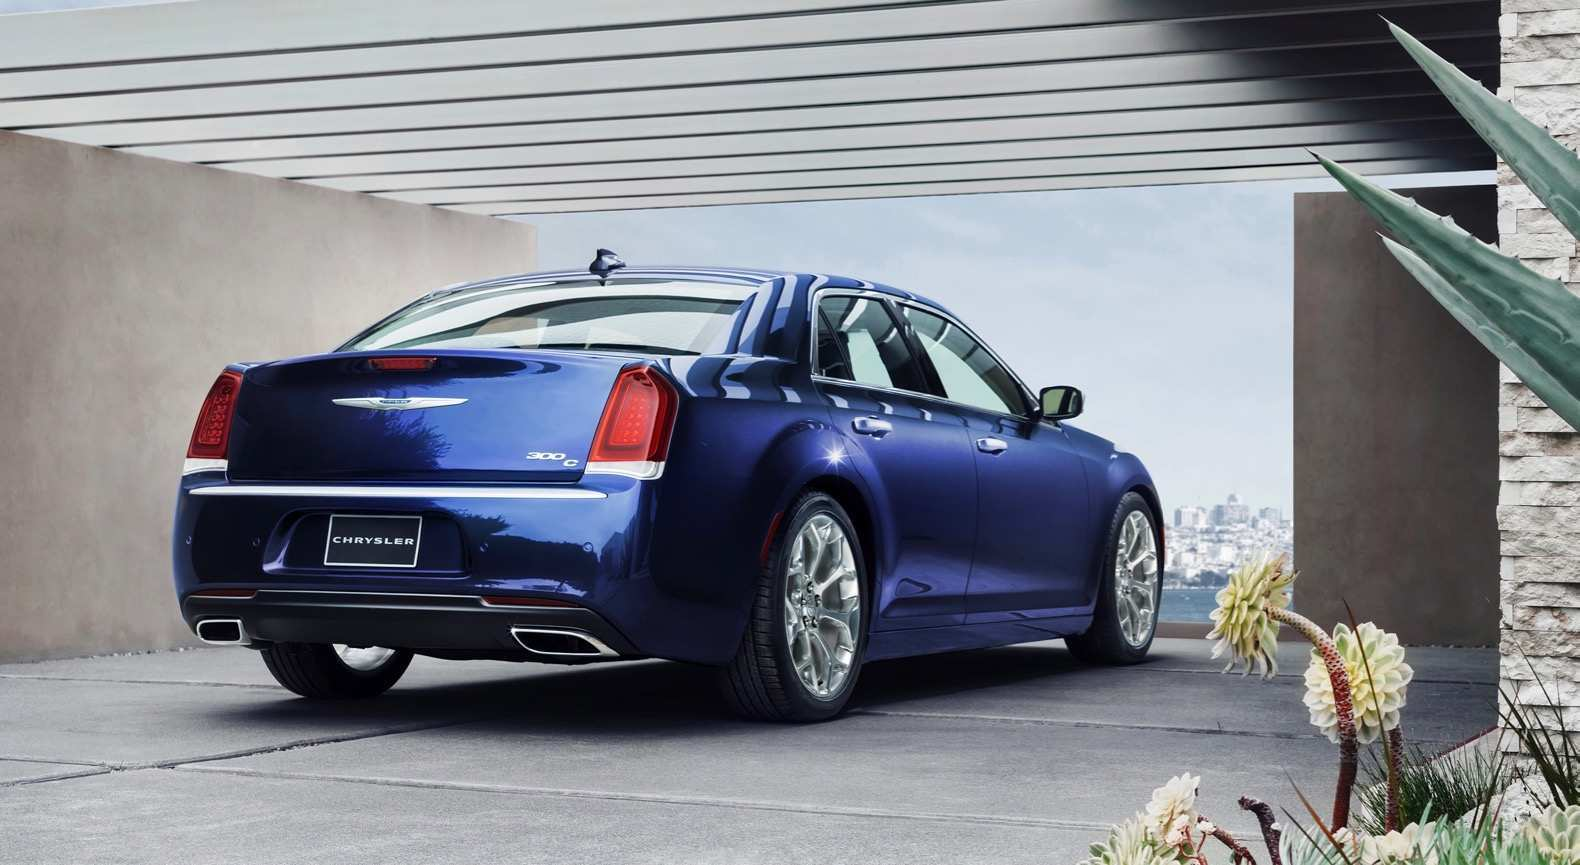 79 The Best 2020 Chrysler 300 Srt8 Pricing